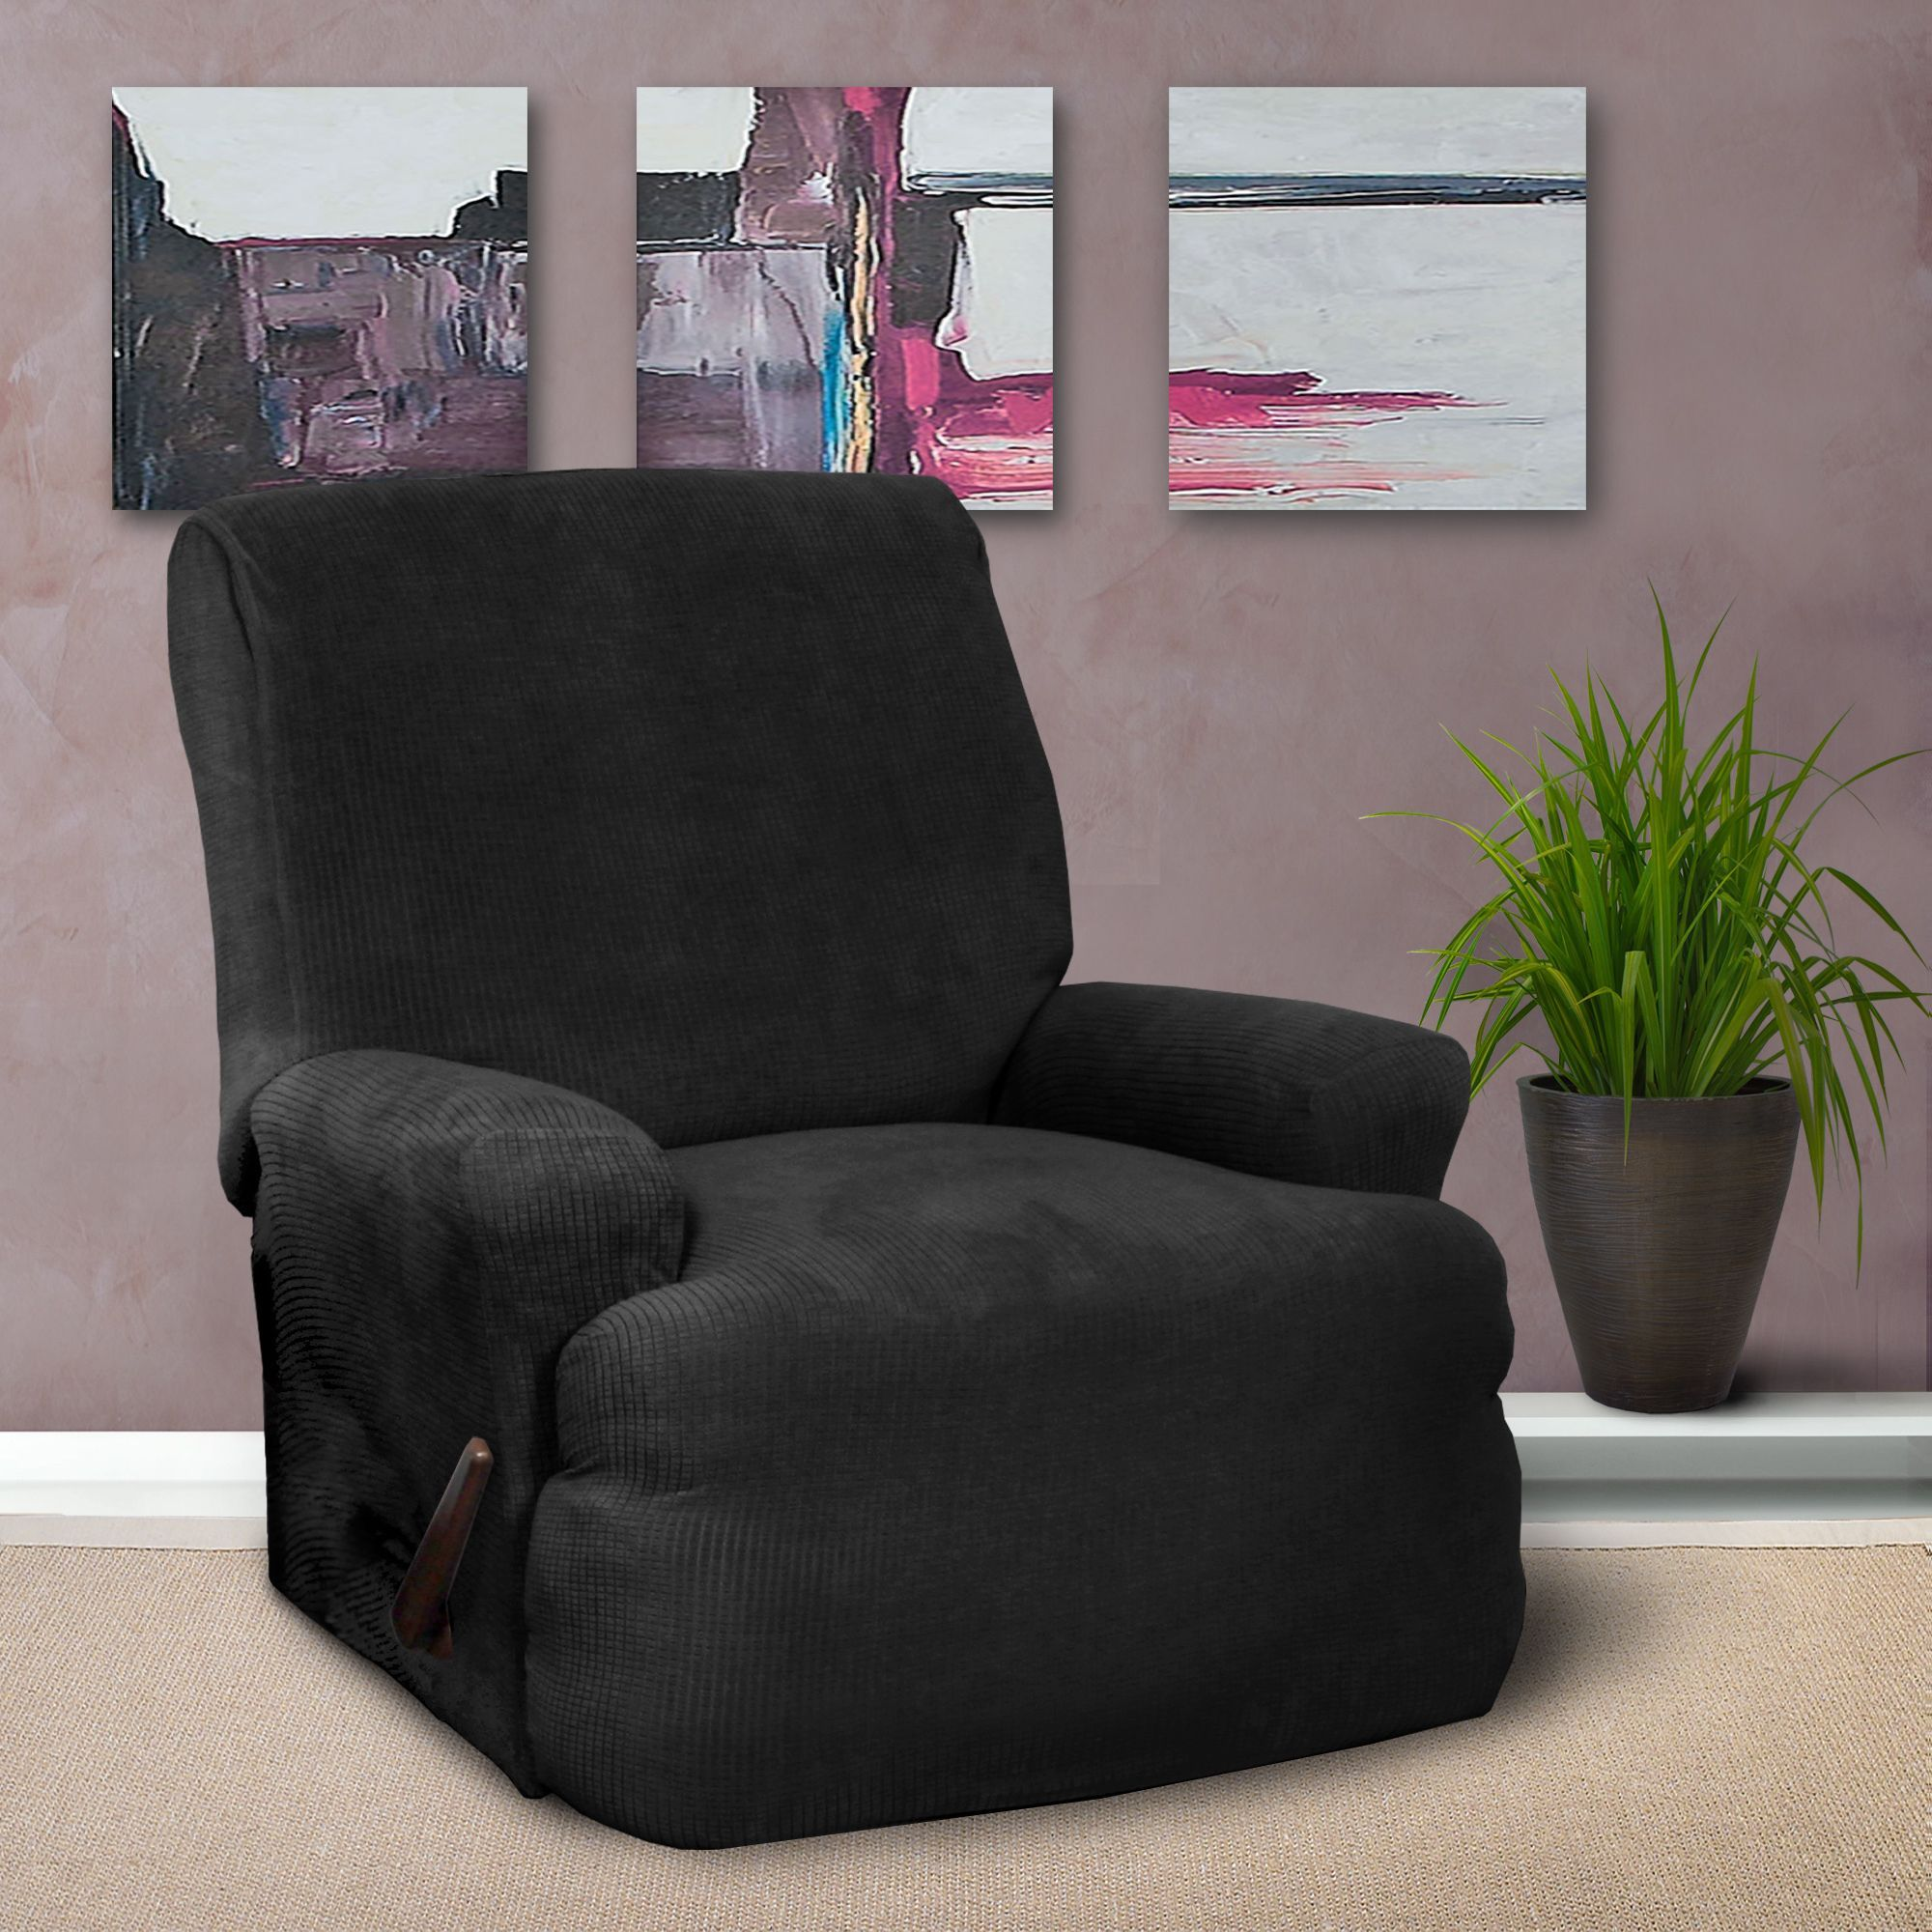 stretch for slipcover recliner and recliners slipcovers pique pin